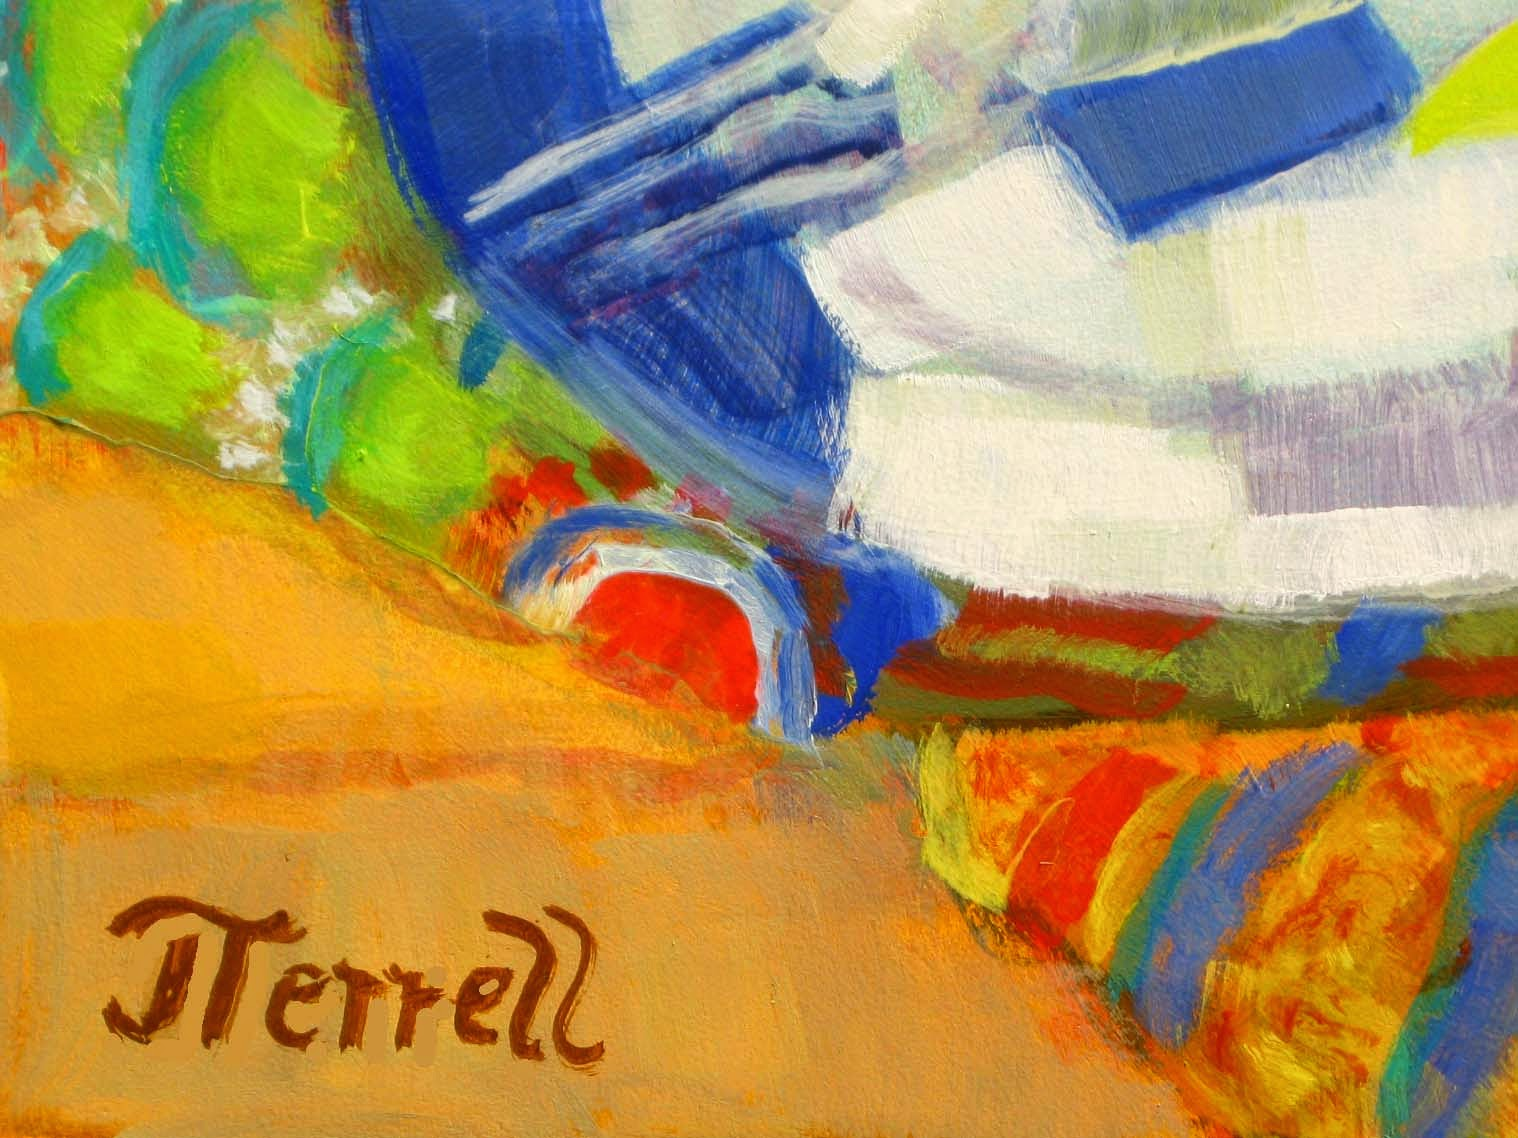 closeup of pattern in fauvist oil painting by Joan Terrell, including signature